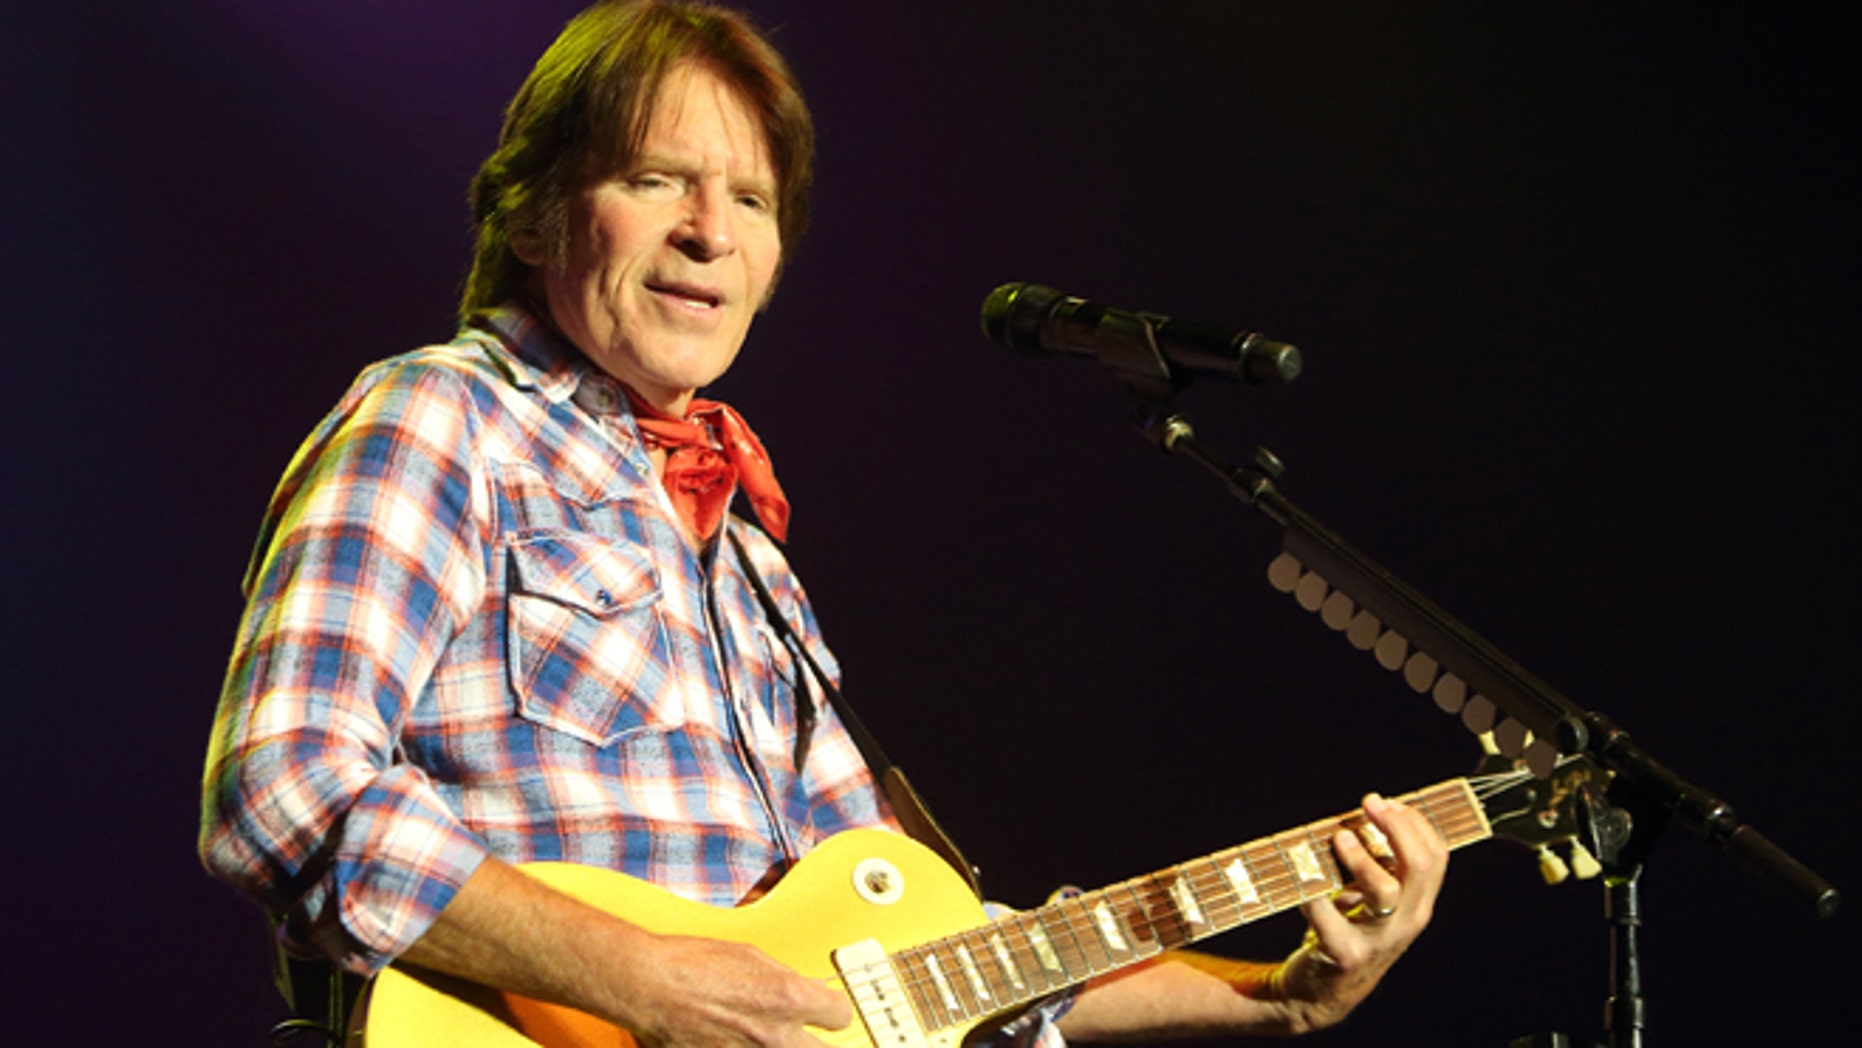 July 18, 2014: Singer-songwriter John Fogerty performs in concert at The Sands Event Center in Bethlehem, Pa.